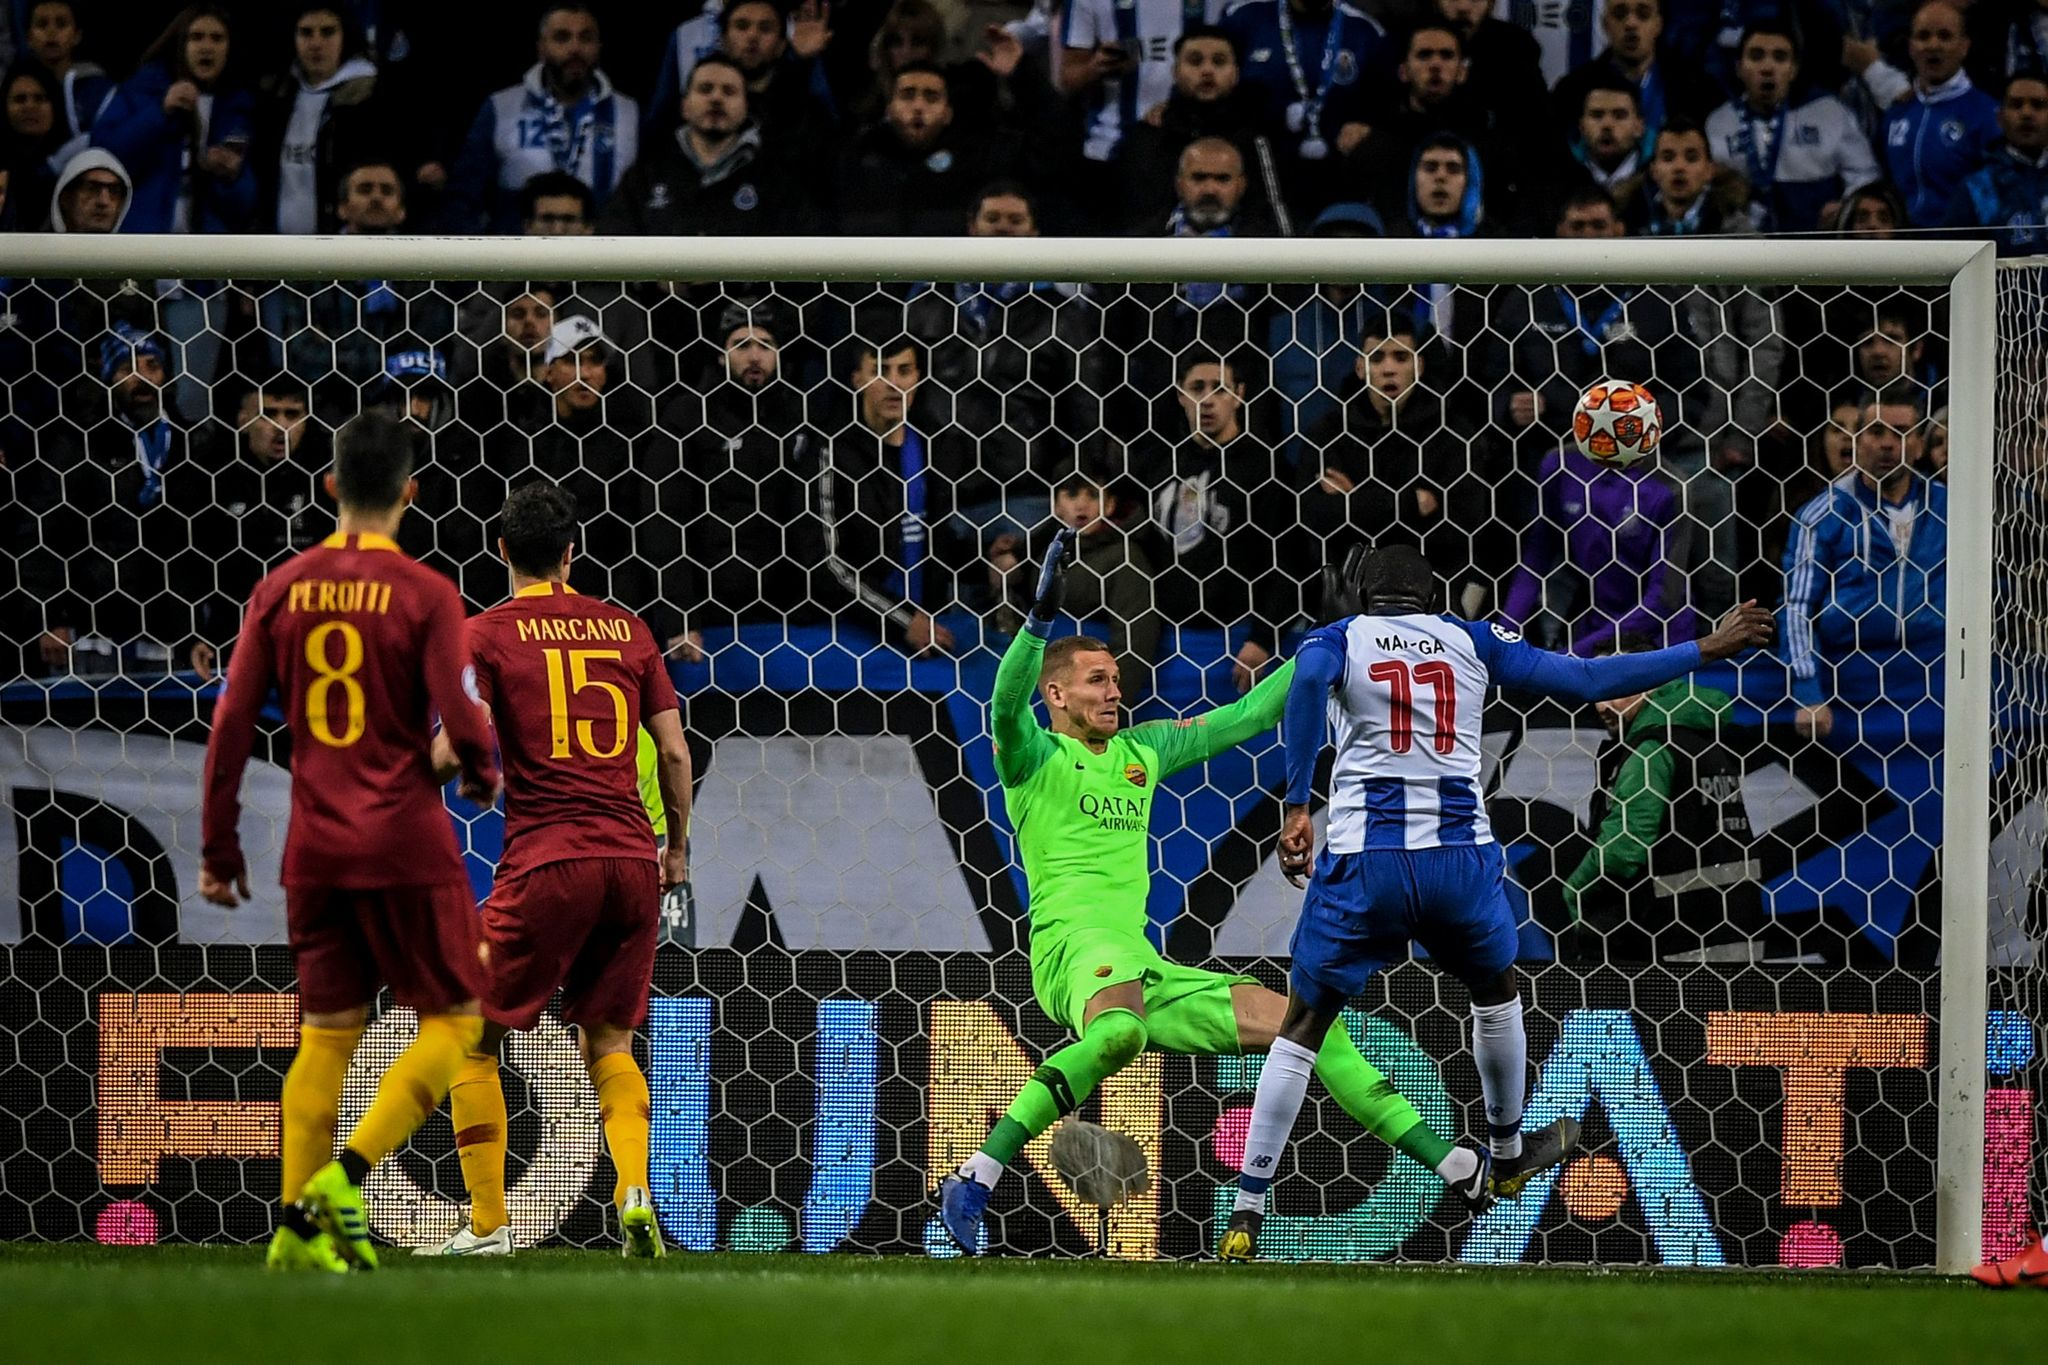 Portos Malian forward Moussa <HIT>Marega</HIT> (R) shoots to score a goal during the UEFA Champions League round of 16 second leg football match between FC Porto and AS Roma at the Dragao stadium in Porto on March 6, 2019. (Photo by PATRICIA DE MELO MOREIRA / AFP)